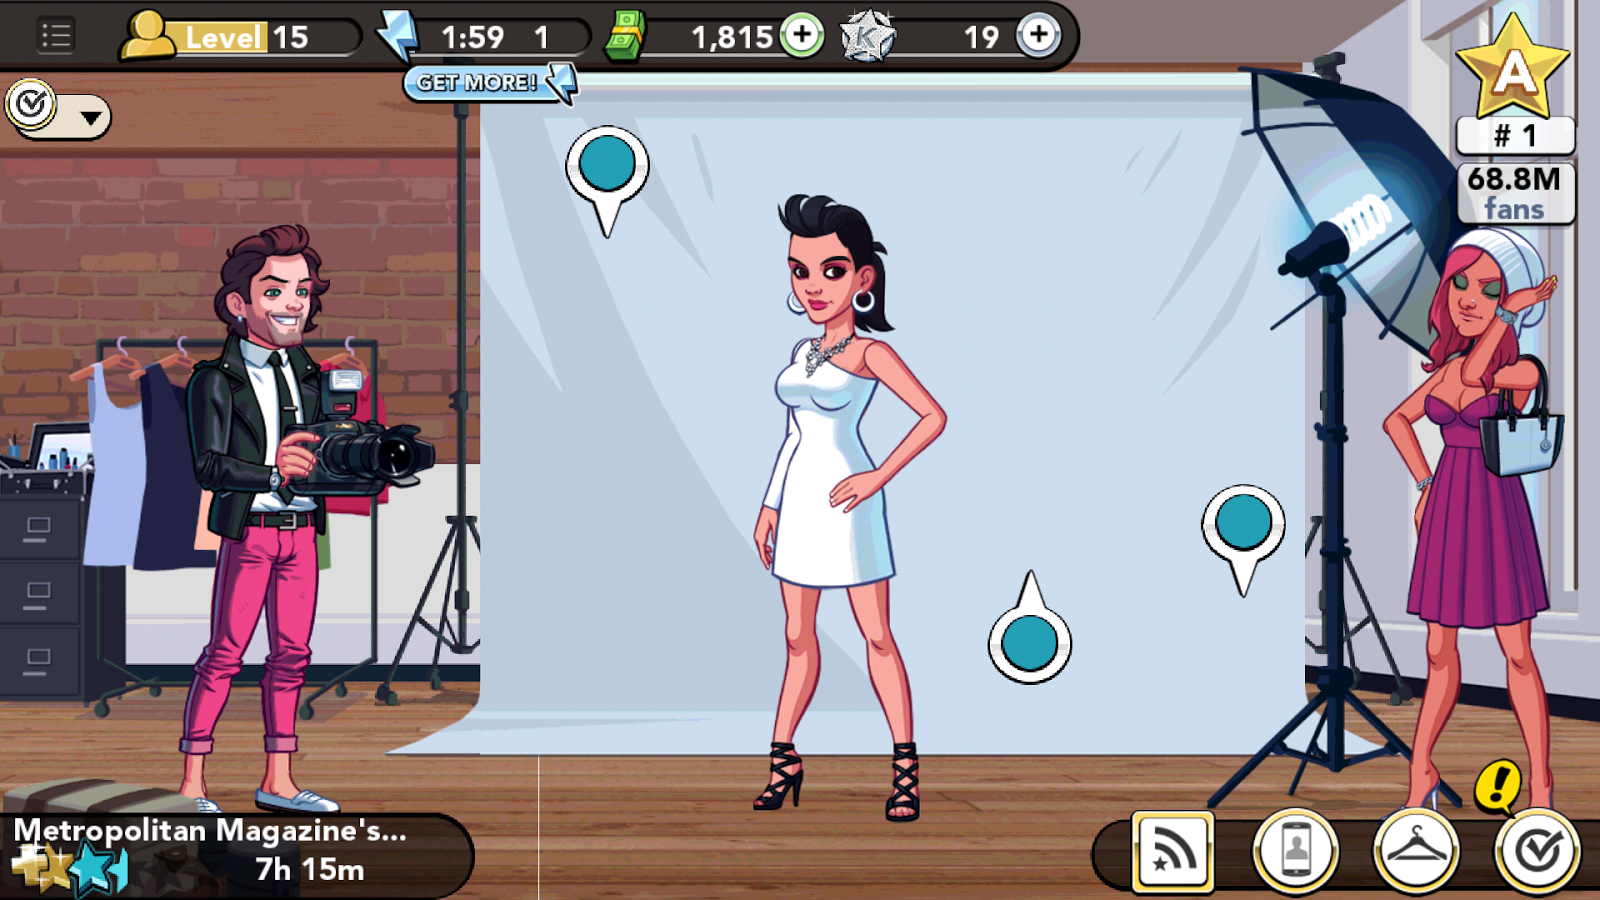 Kim Kardashian: Hollywood app - photo shoot